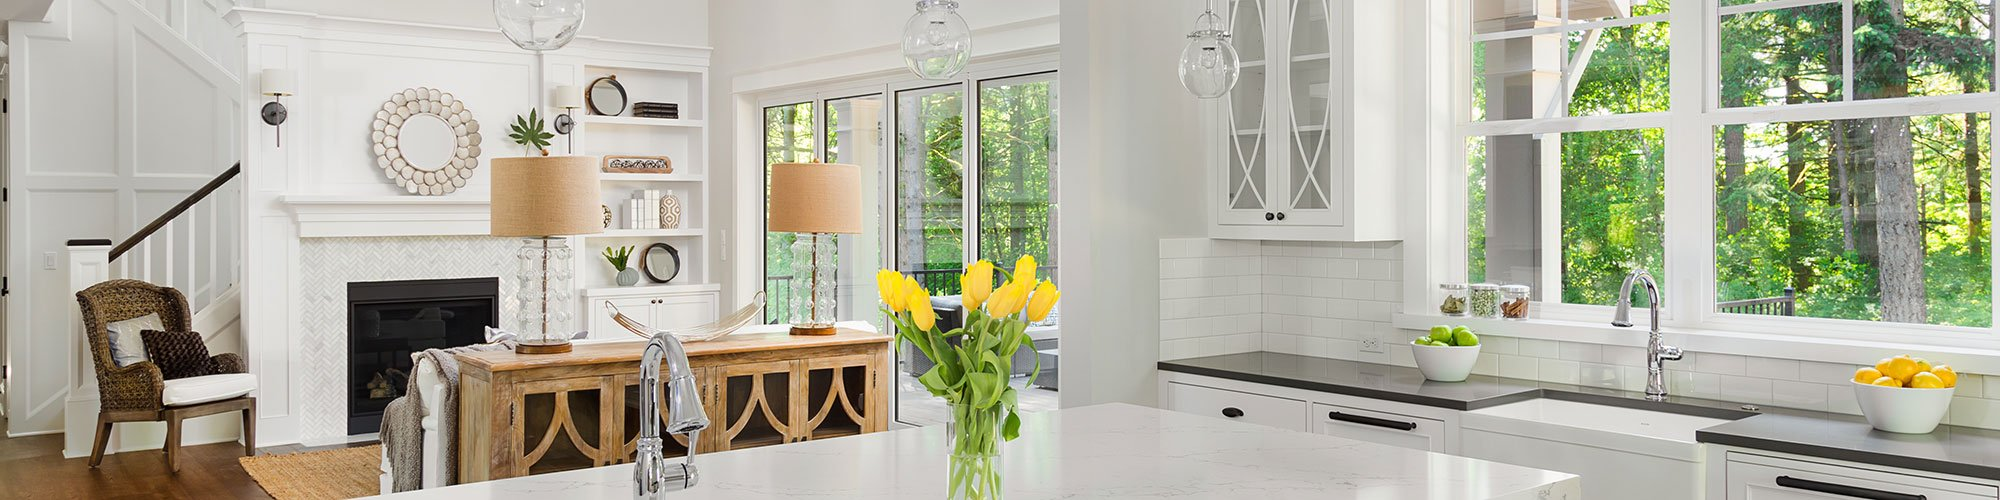 Woodland Hills Ca Kitchen And Bathroom Remodeling Contractor